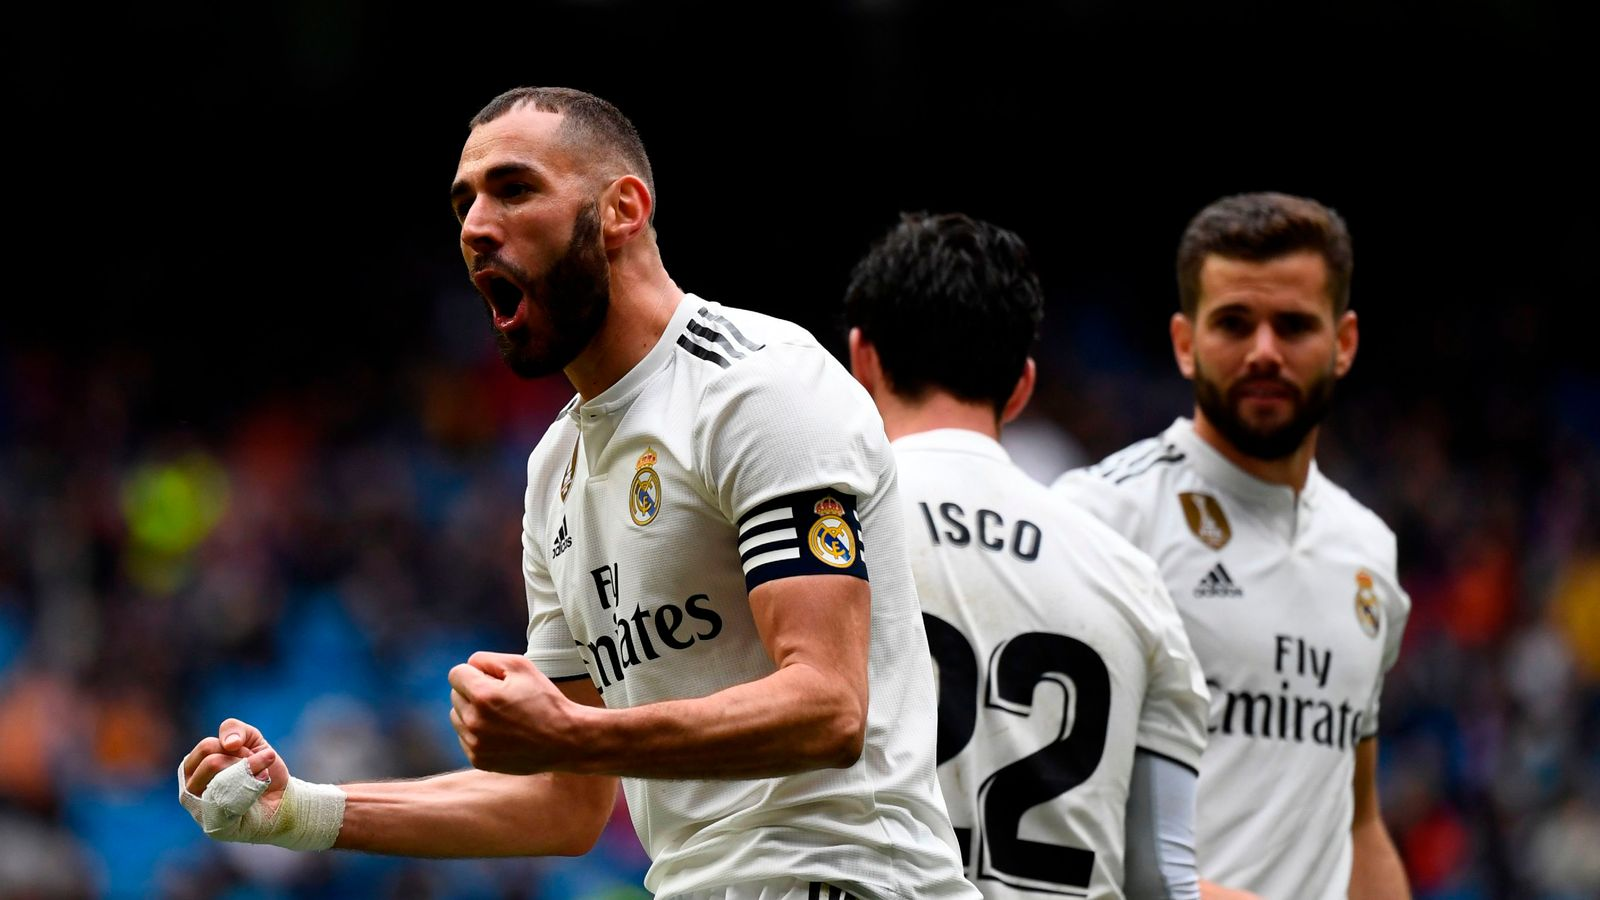 Match Report - R Madrid 2 - 1 Eibar | 06 Apr 2019